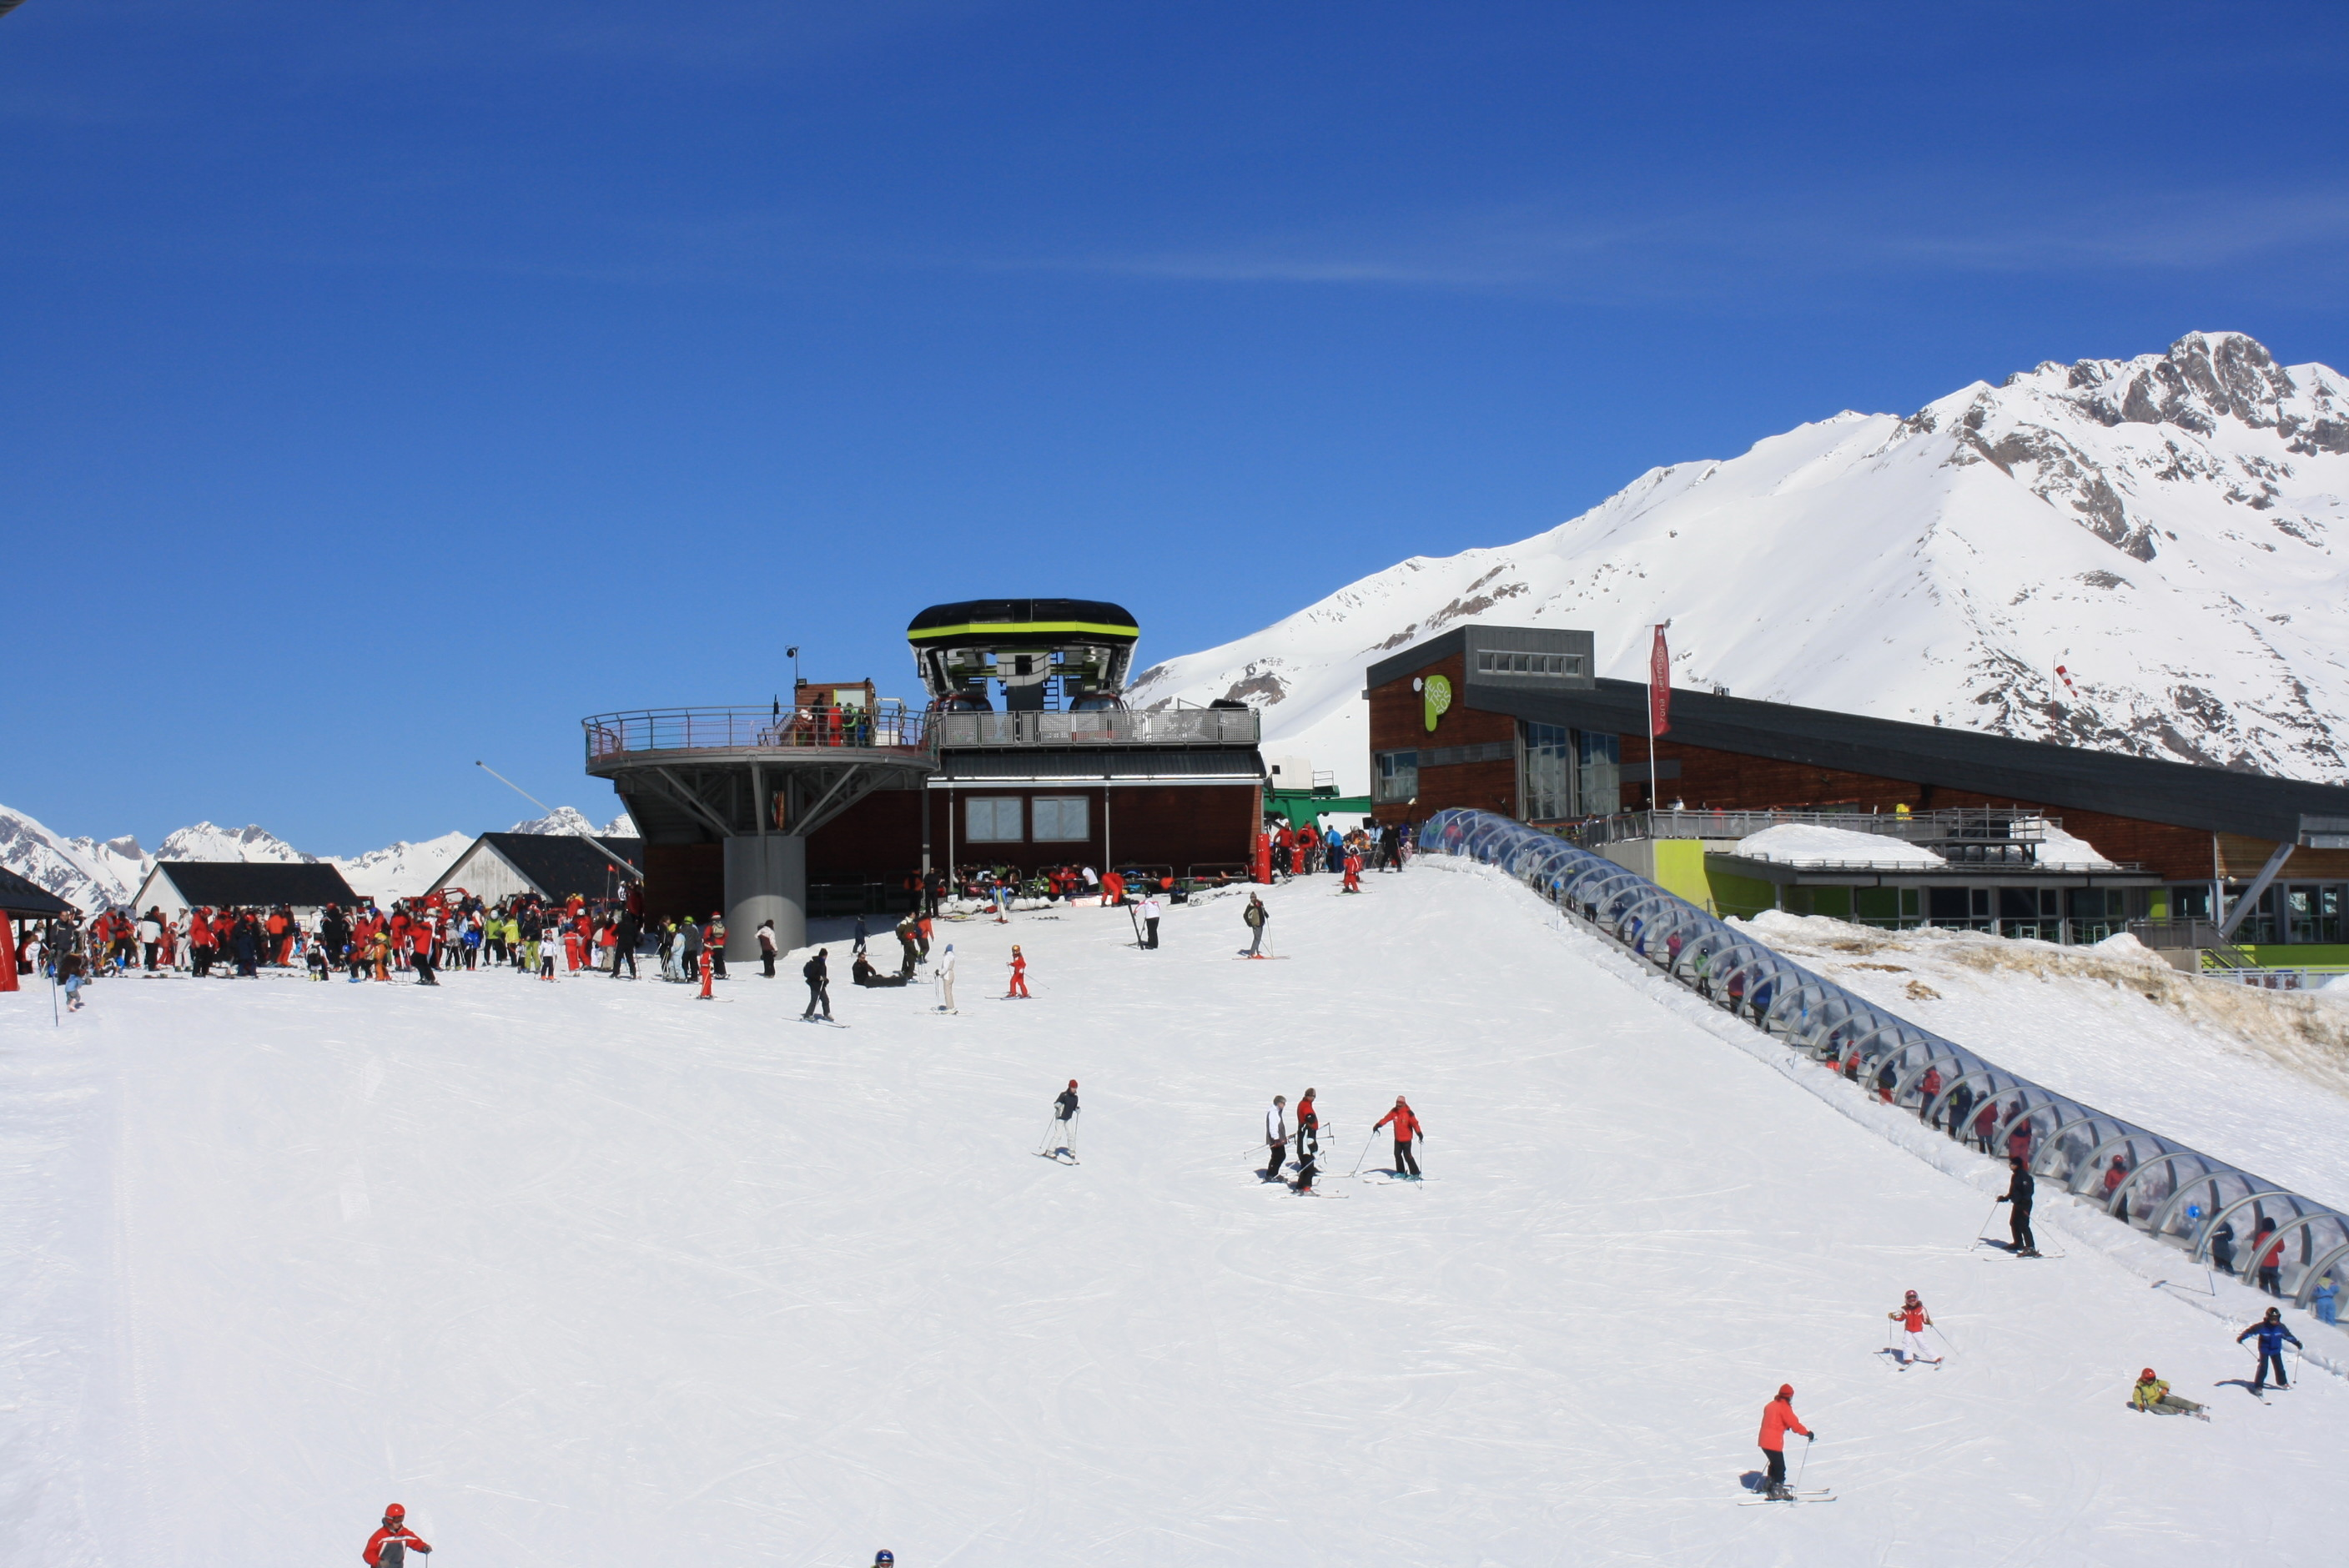 Ski area of Panticosa, Spainundefined